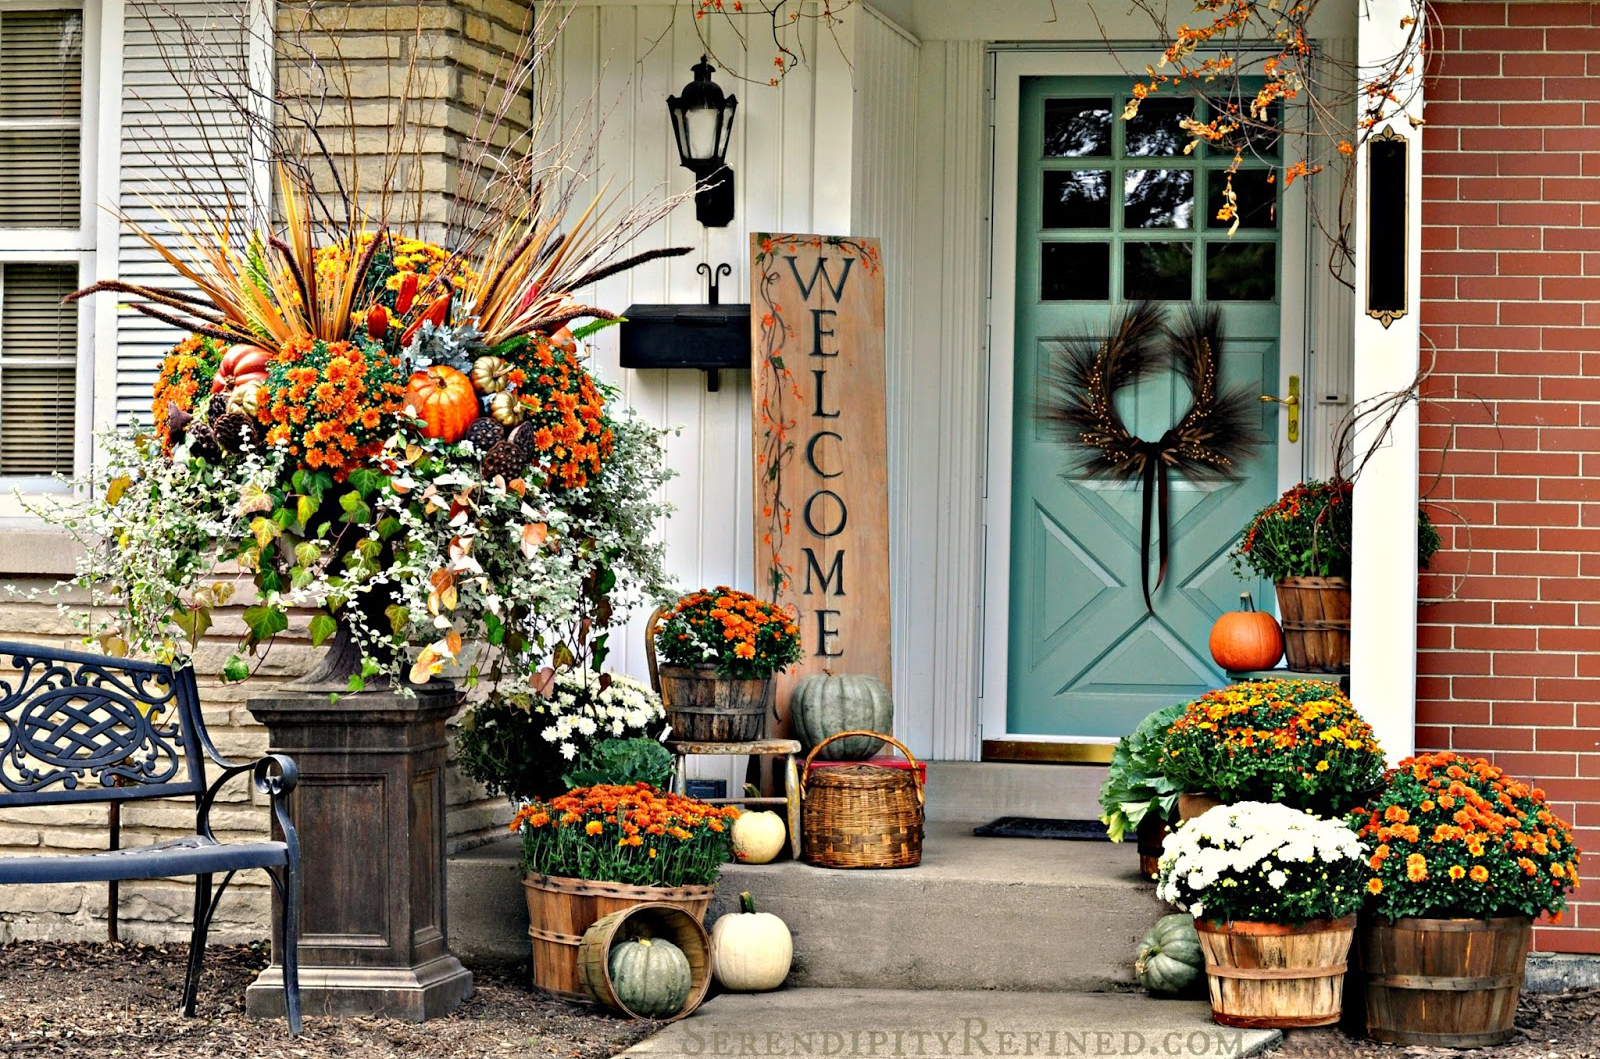 Patio Decorating Ideas 37 fall porch decorating ideas - ways to decorate your porch for fall